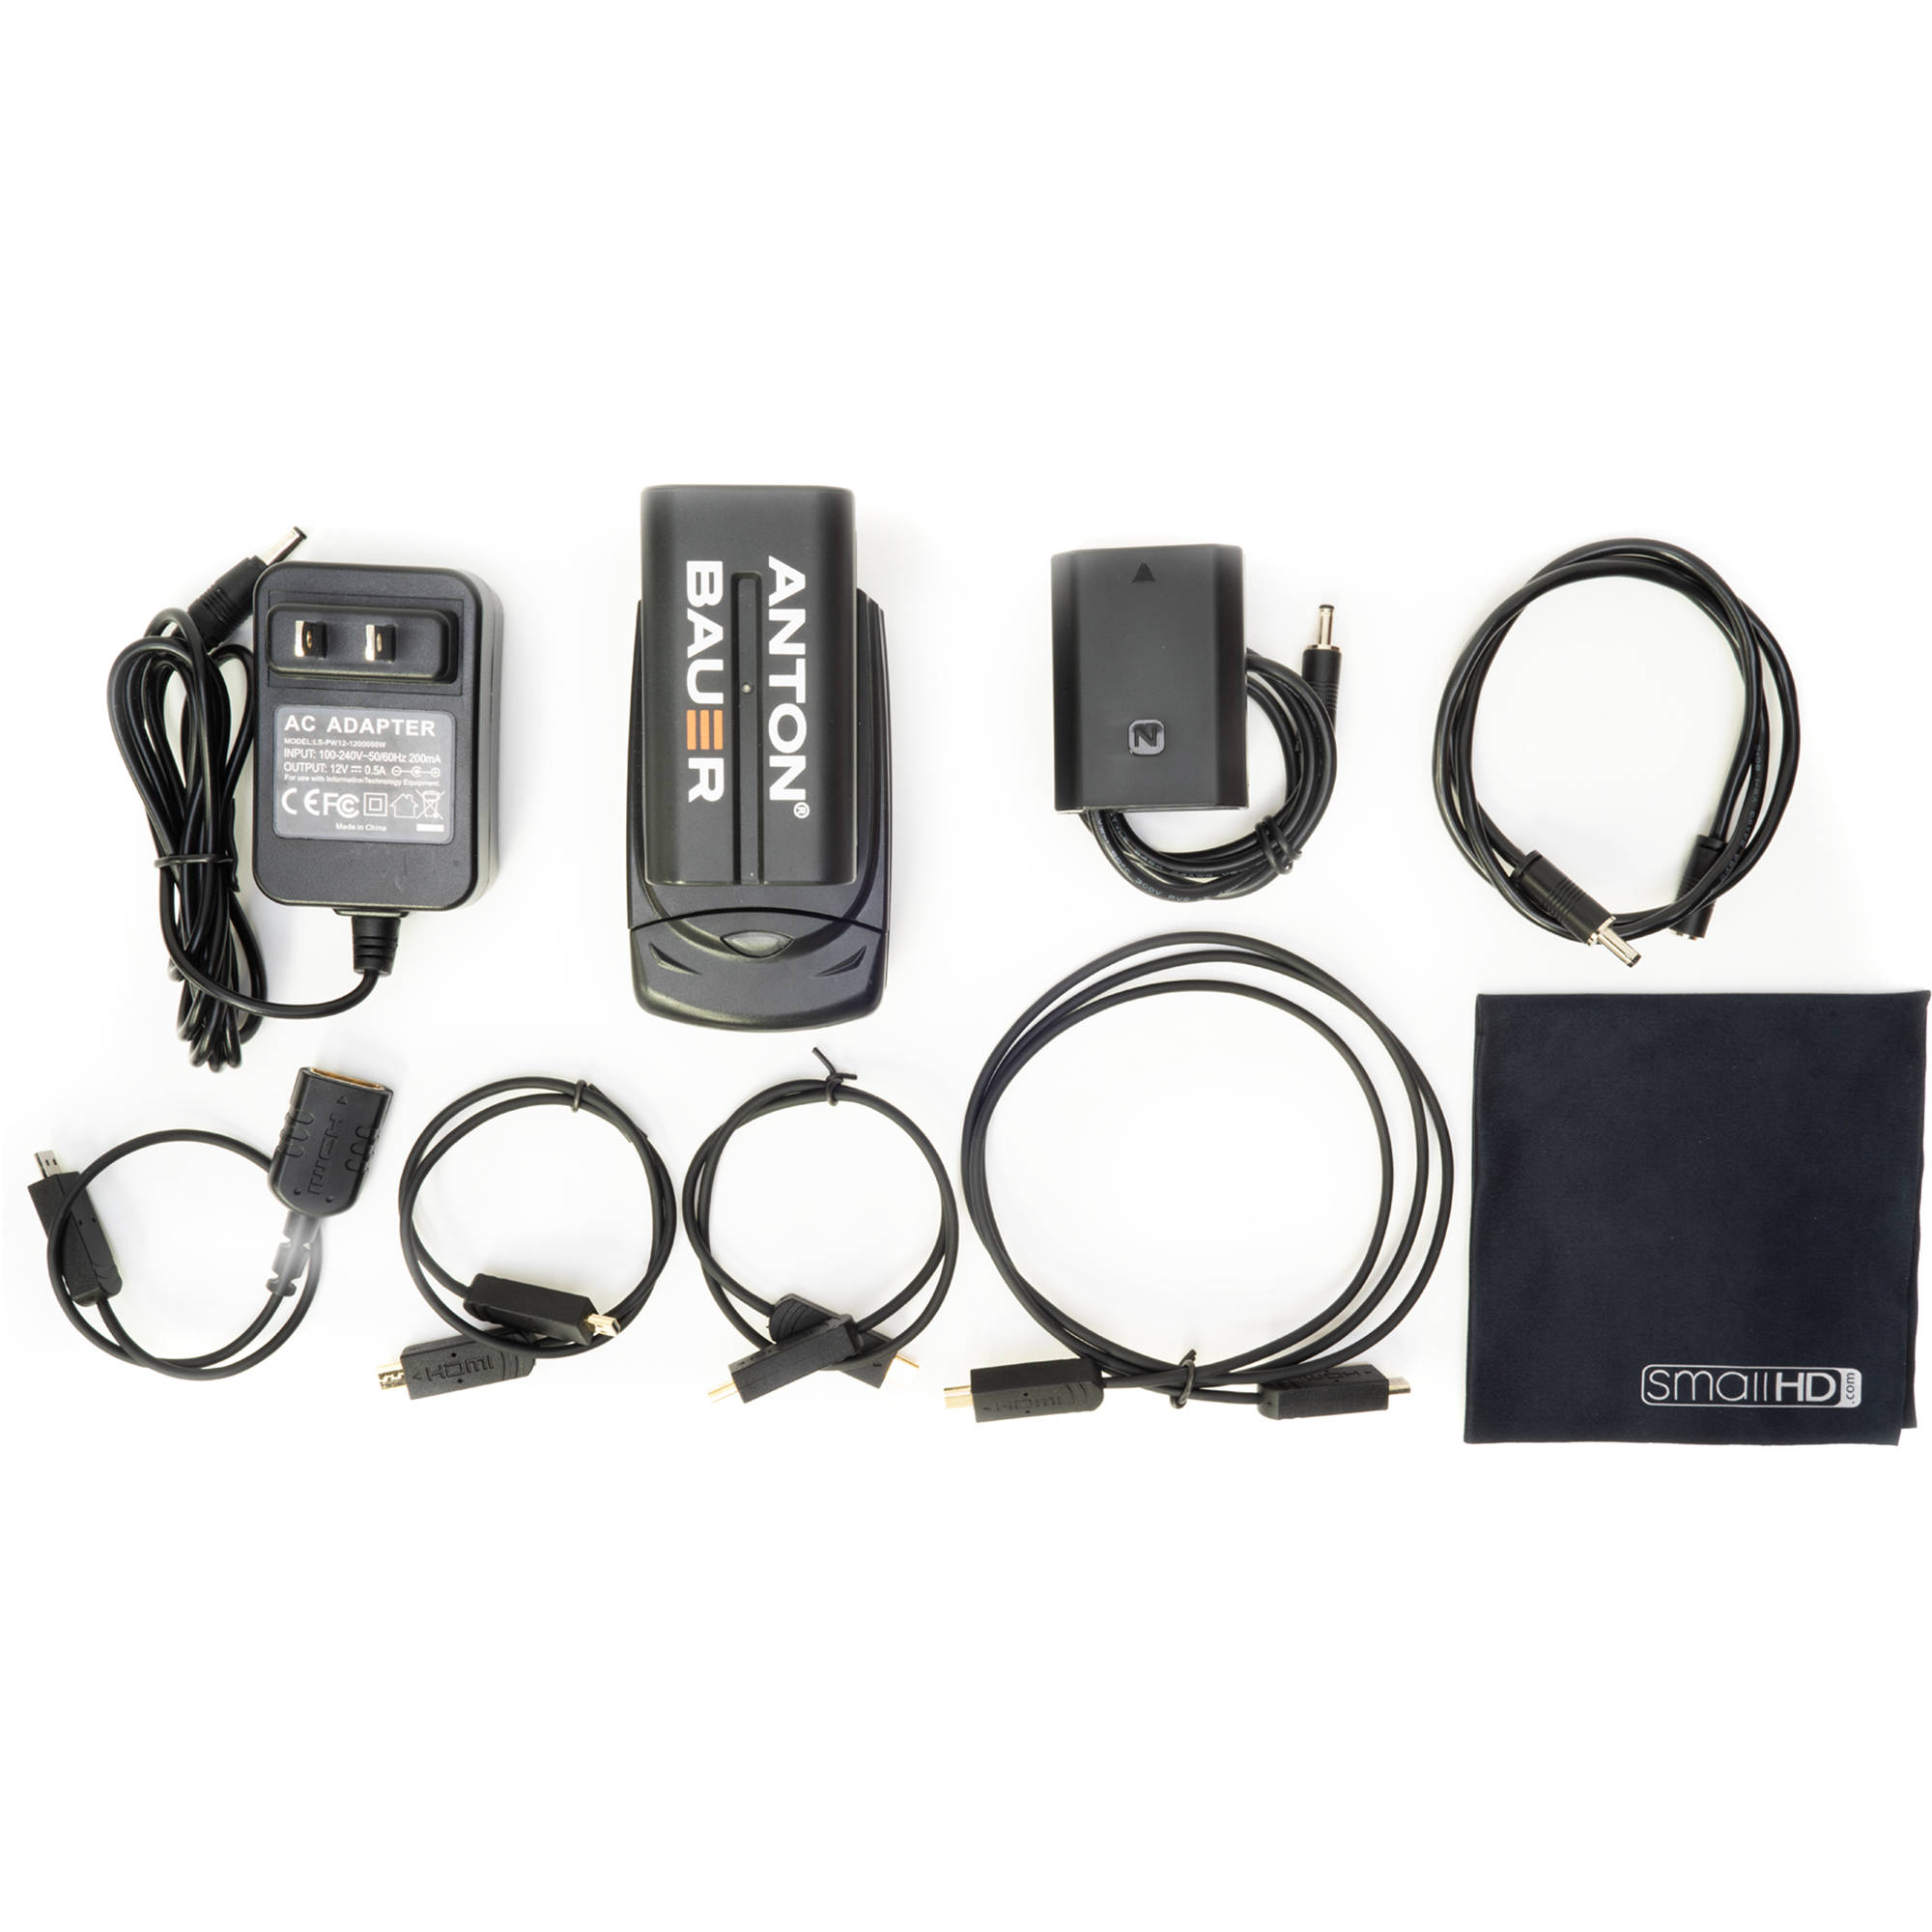 SmallHD Sony NP-FZ100 Power Pack for Sony a7RIII or a7III Cameras with  FOCUS 5 Monitor